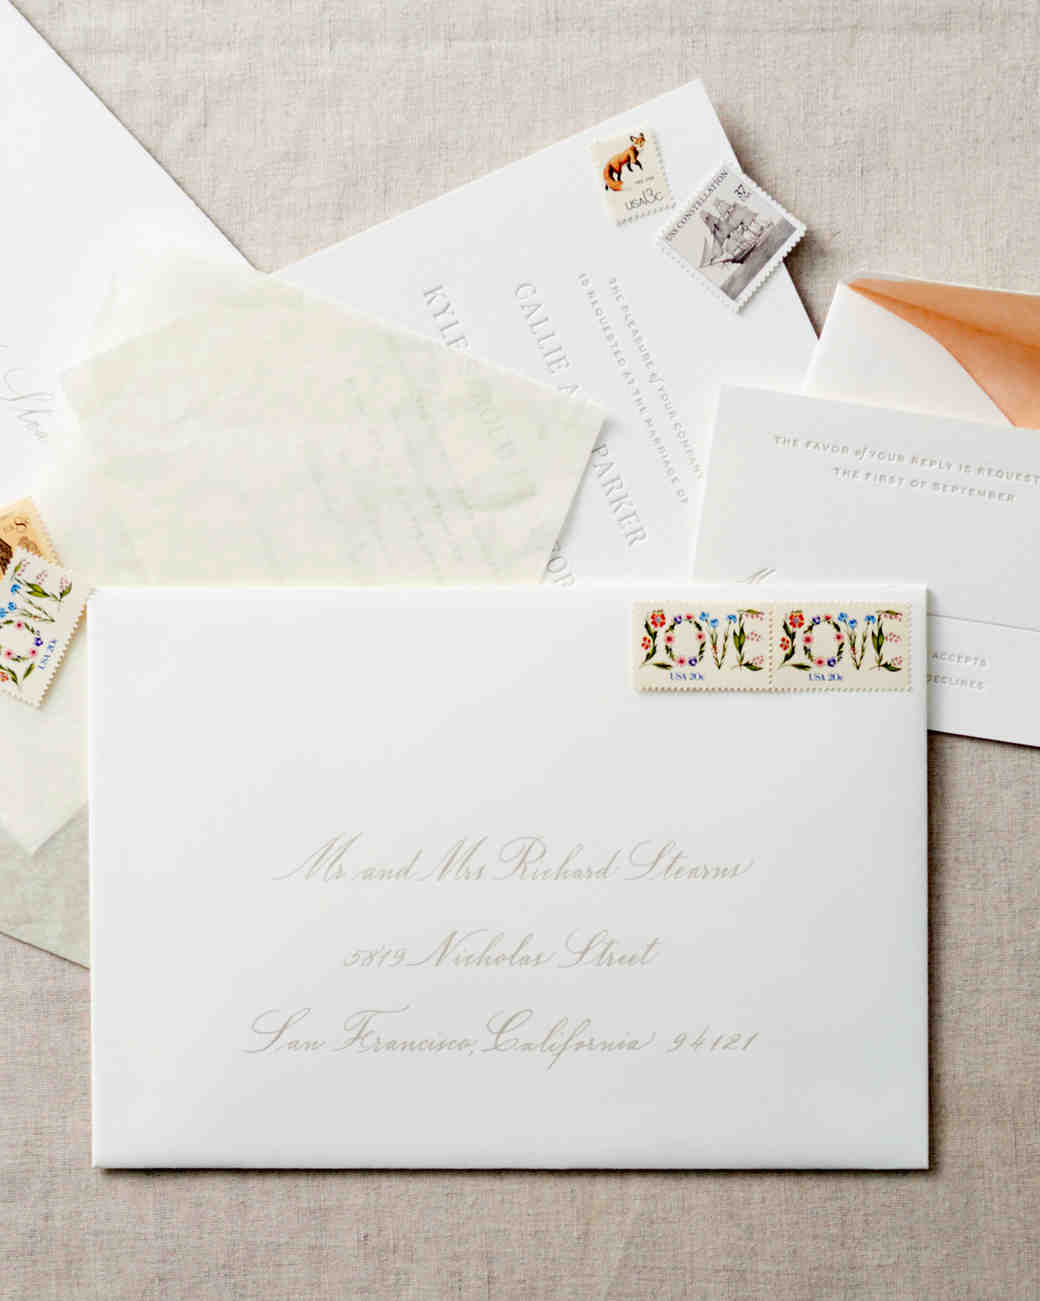 How to address guests on wedding invitation envelopes martha how to address guests on wedding invitation envelopes martha stewart weddings filmwisefo